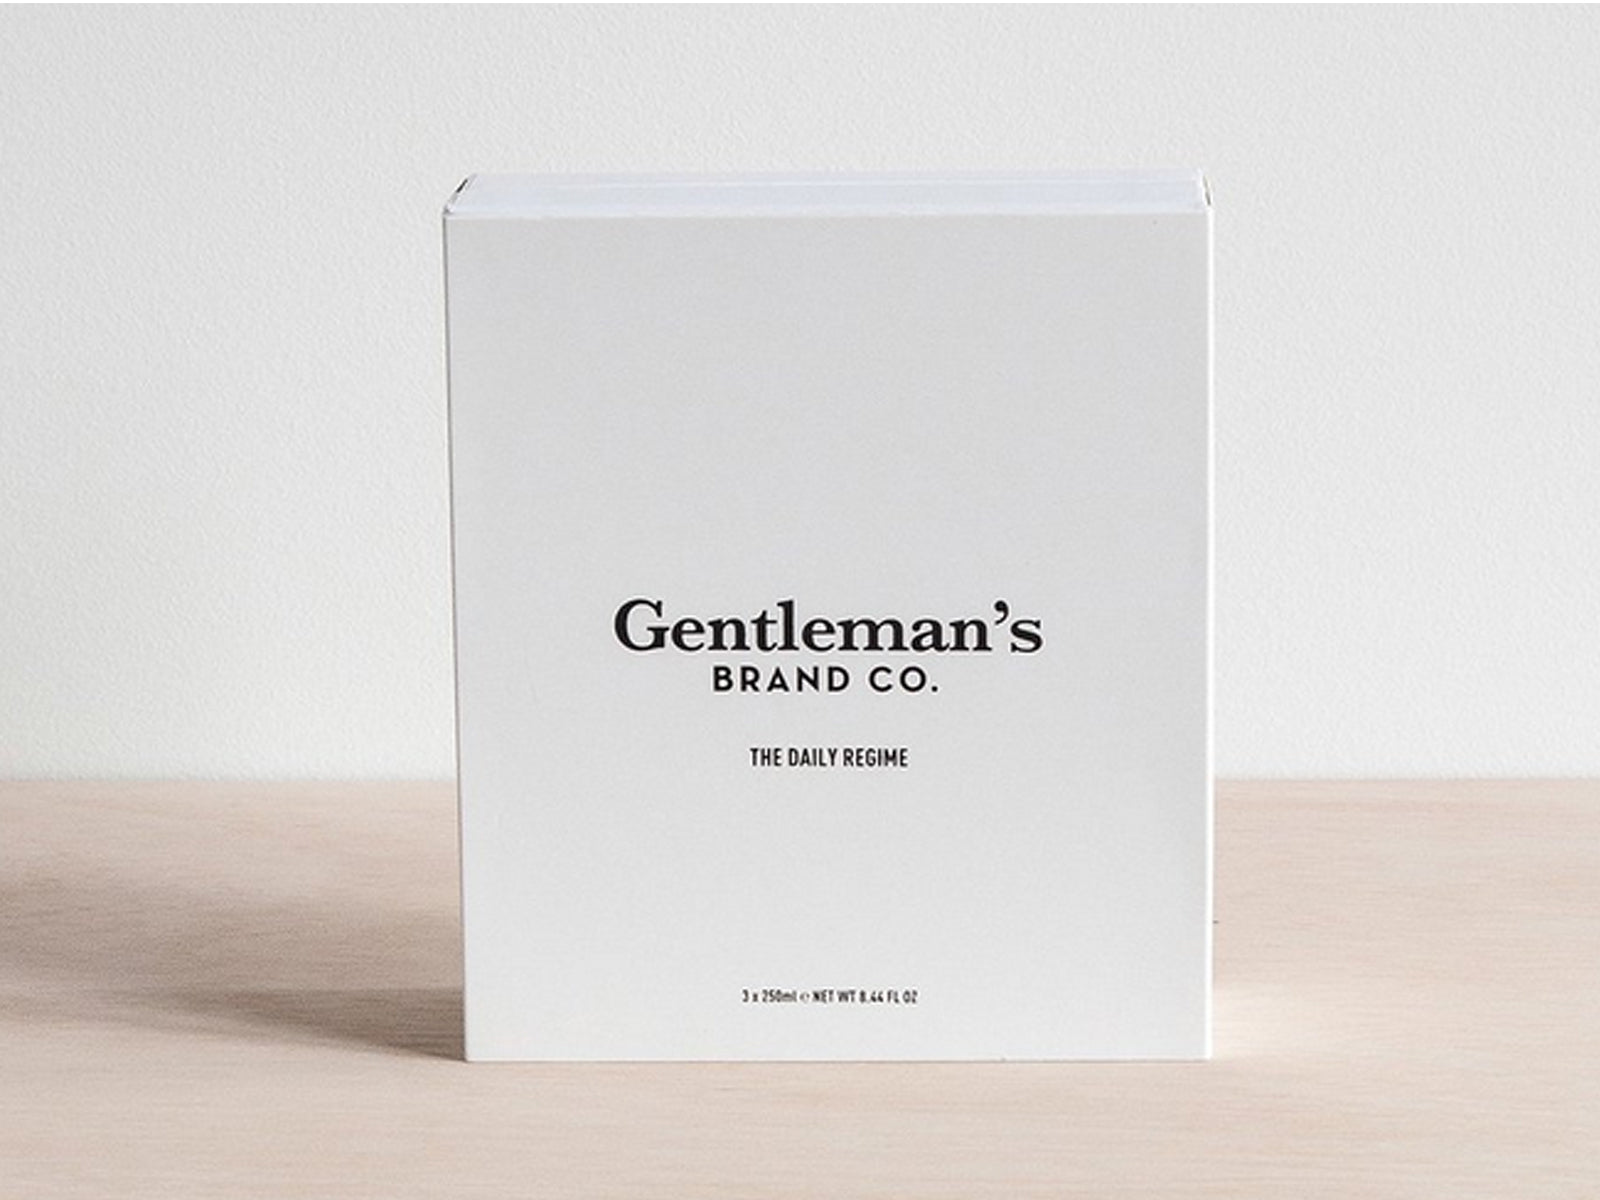 The Daily Regime by Gentlemen's Brand Co